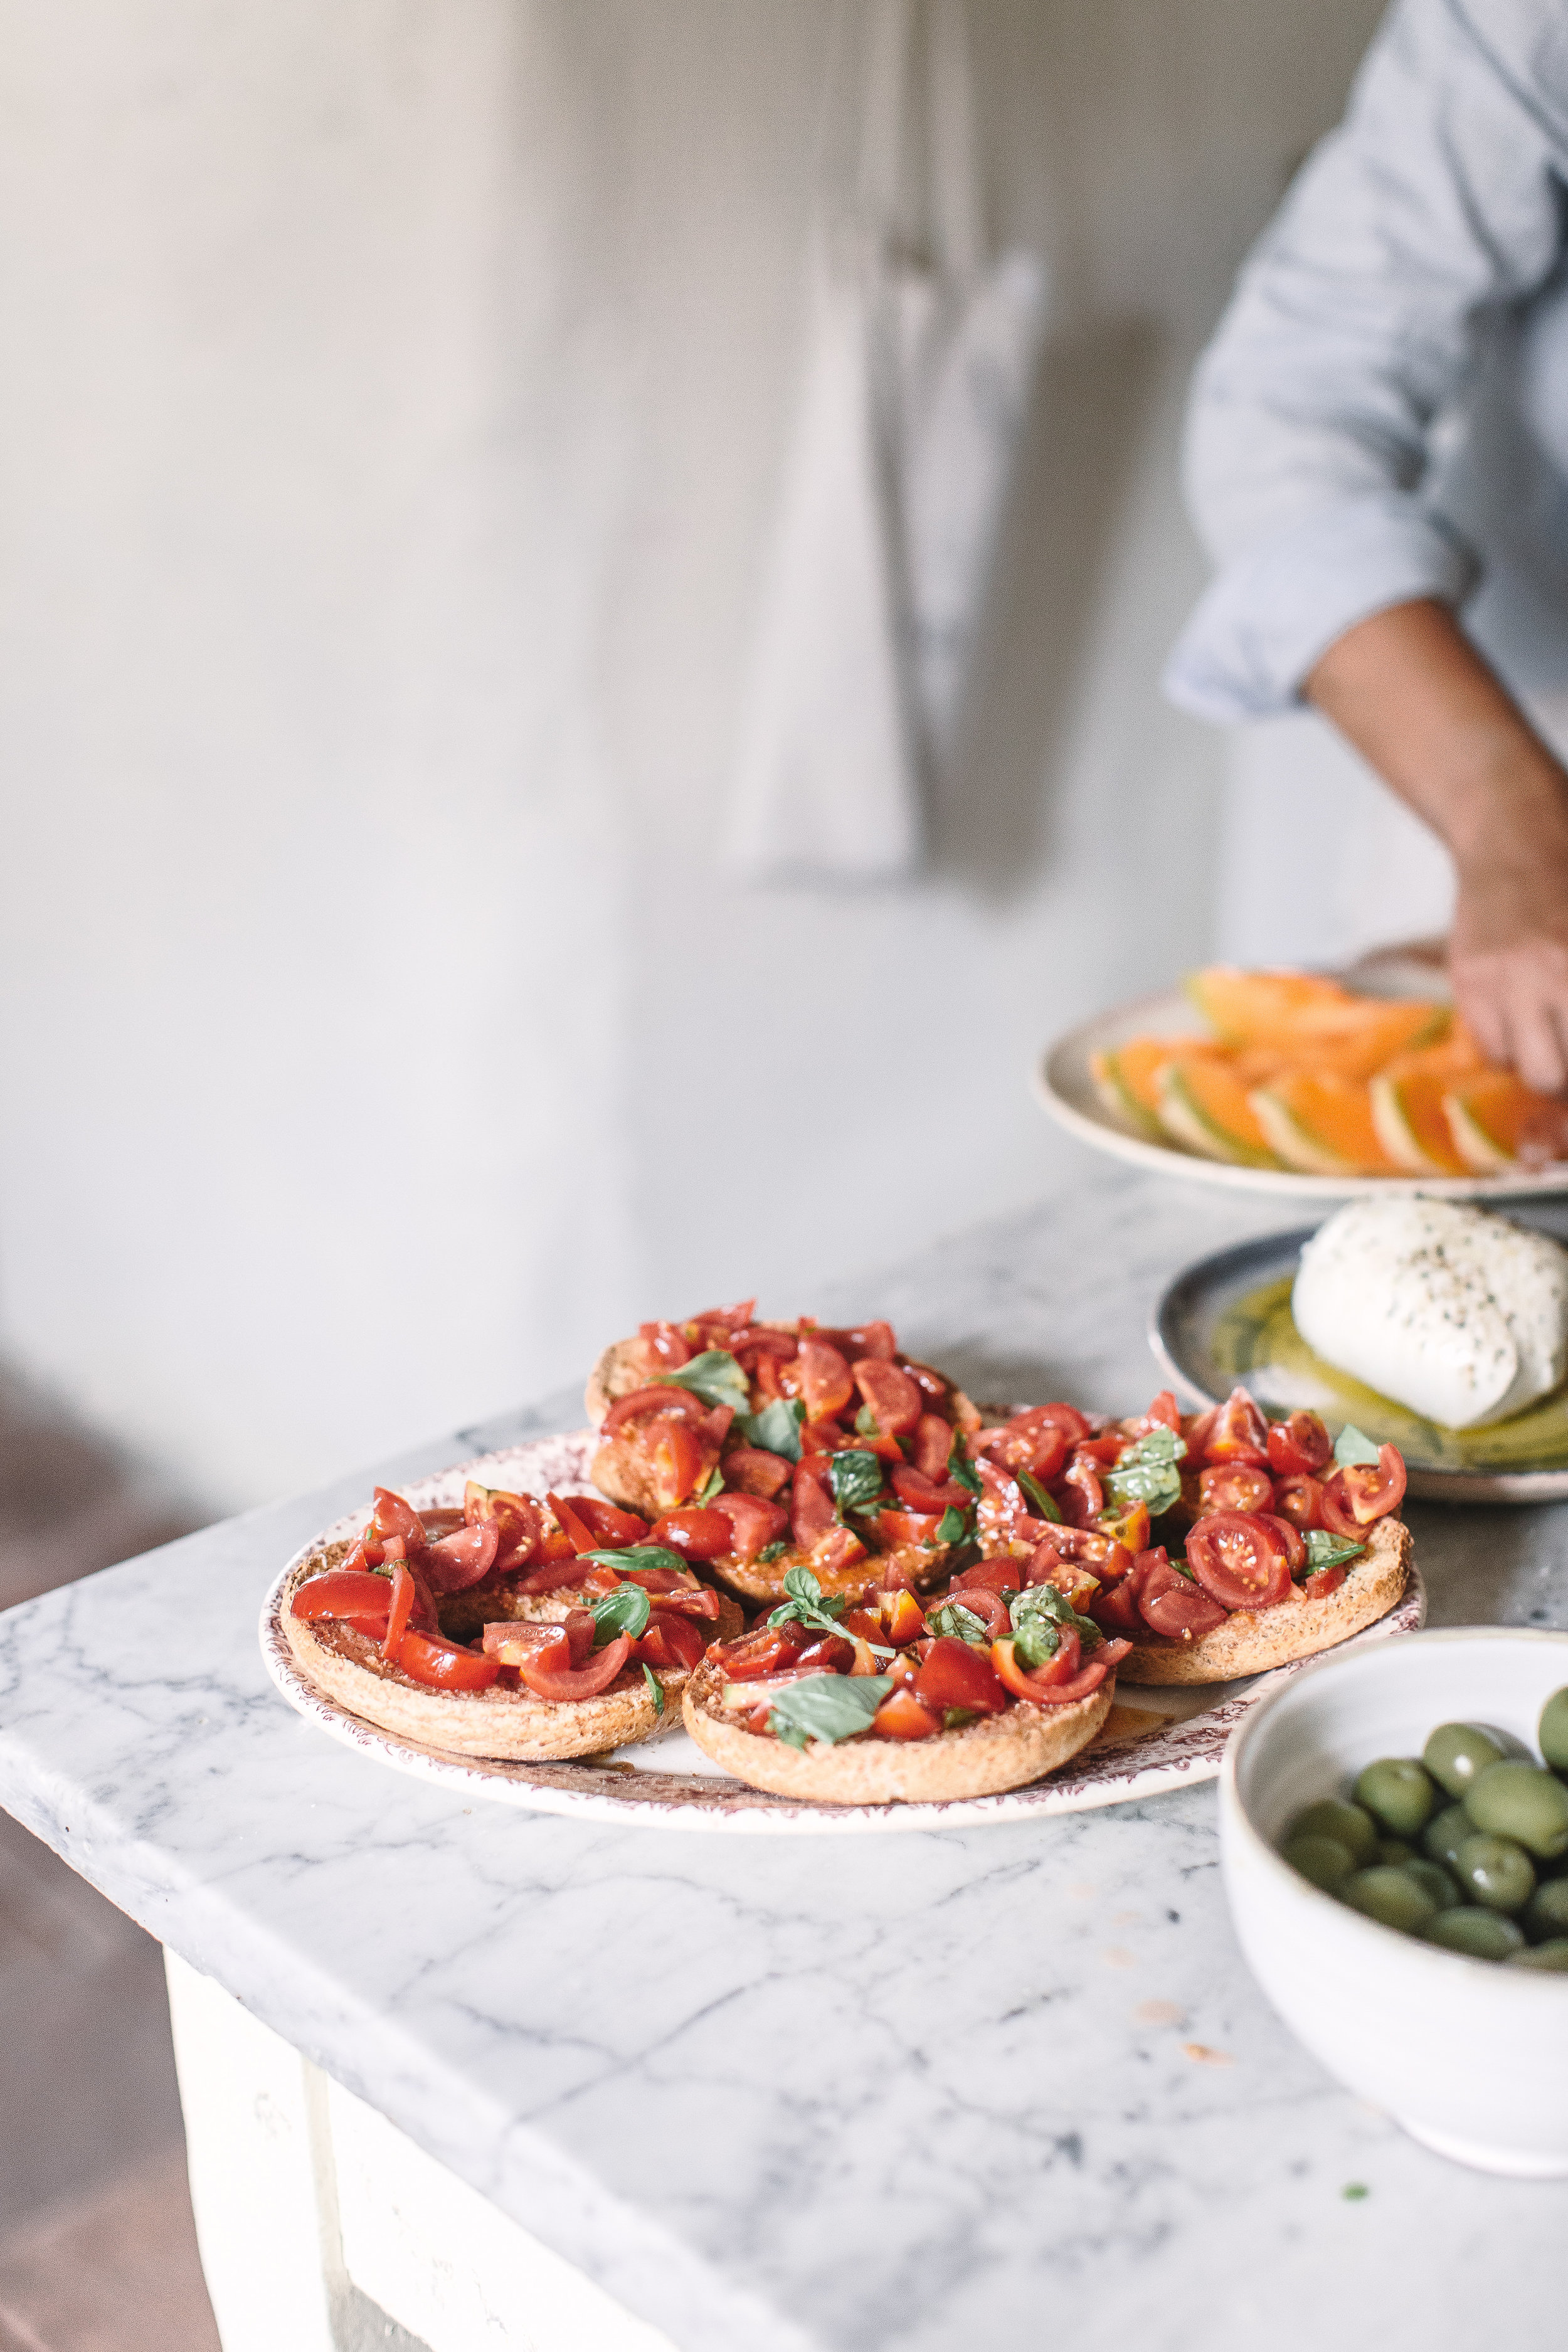 Silvia and I will source the freshest local ingredients and cook every meals for you from scratch. We'll curate the menu and set the mood for unforgettable dinners table conversation.